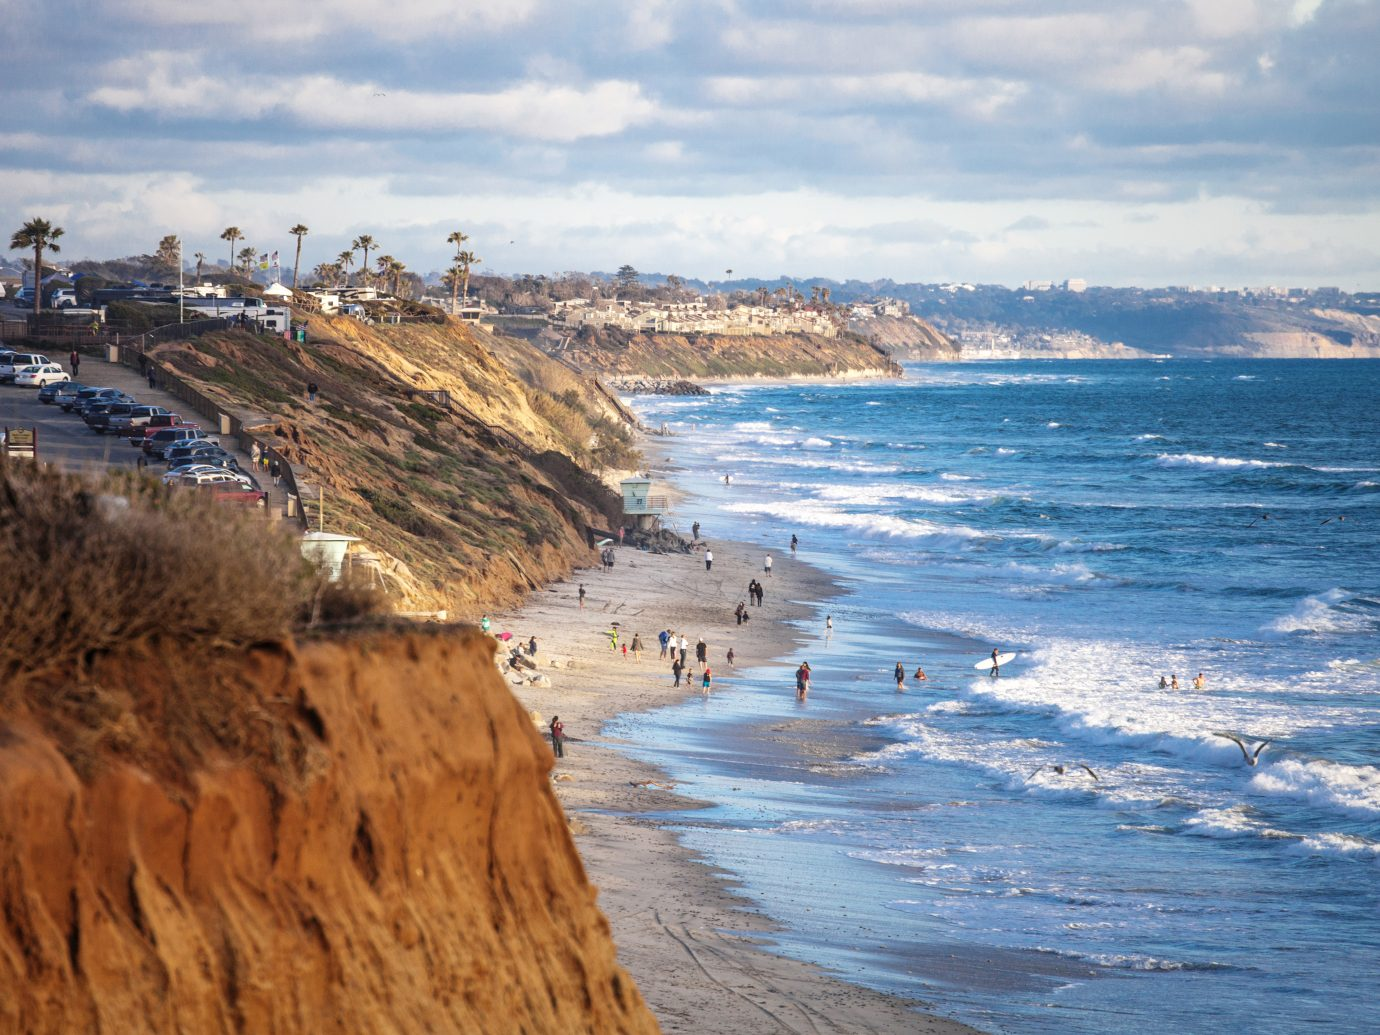 Coastal view South Ponto Beach, Carlsbad, California